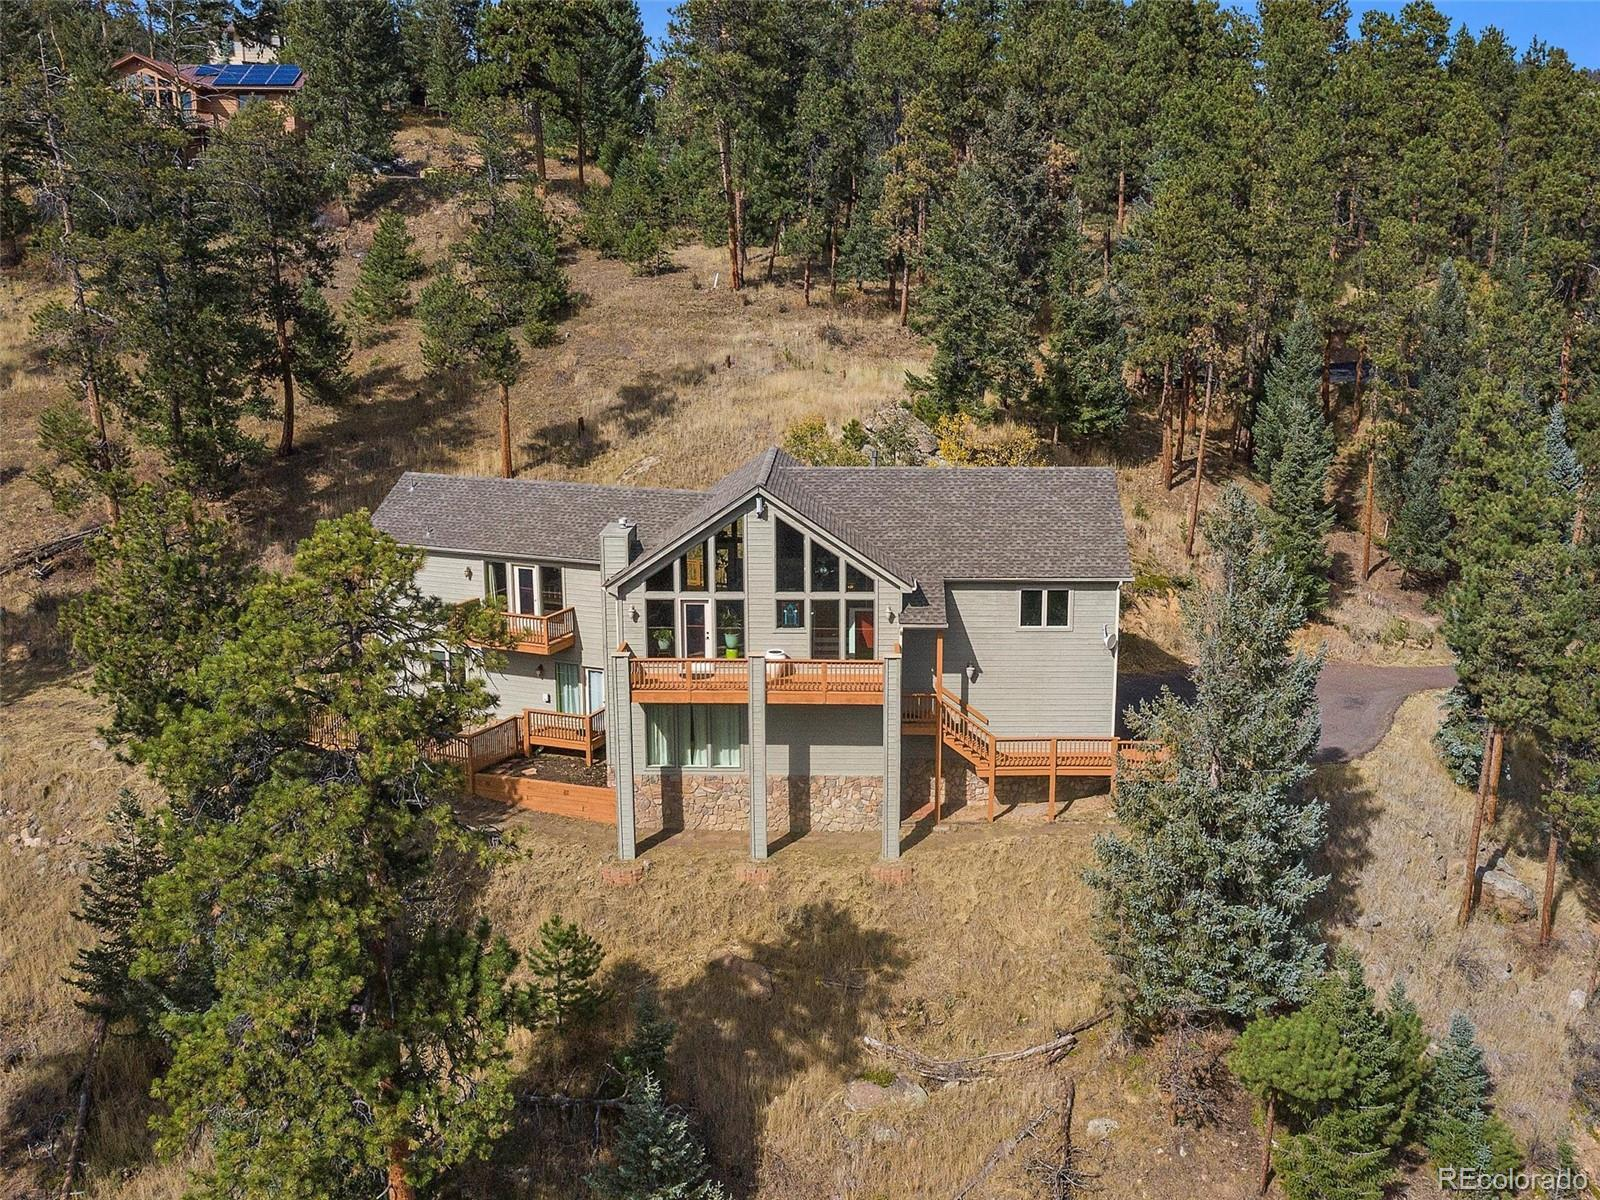 6915 Sprucedale Park Way, Evergreen, CO 80439 - #: 5886039